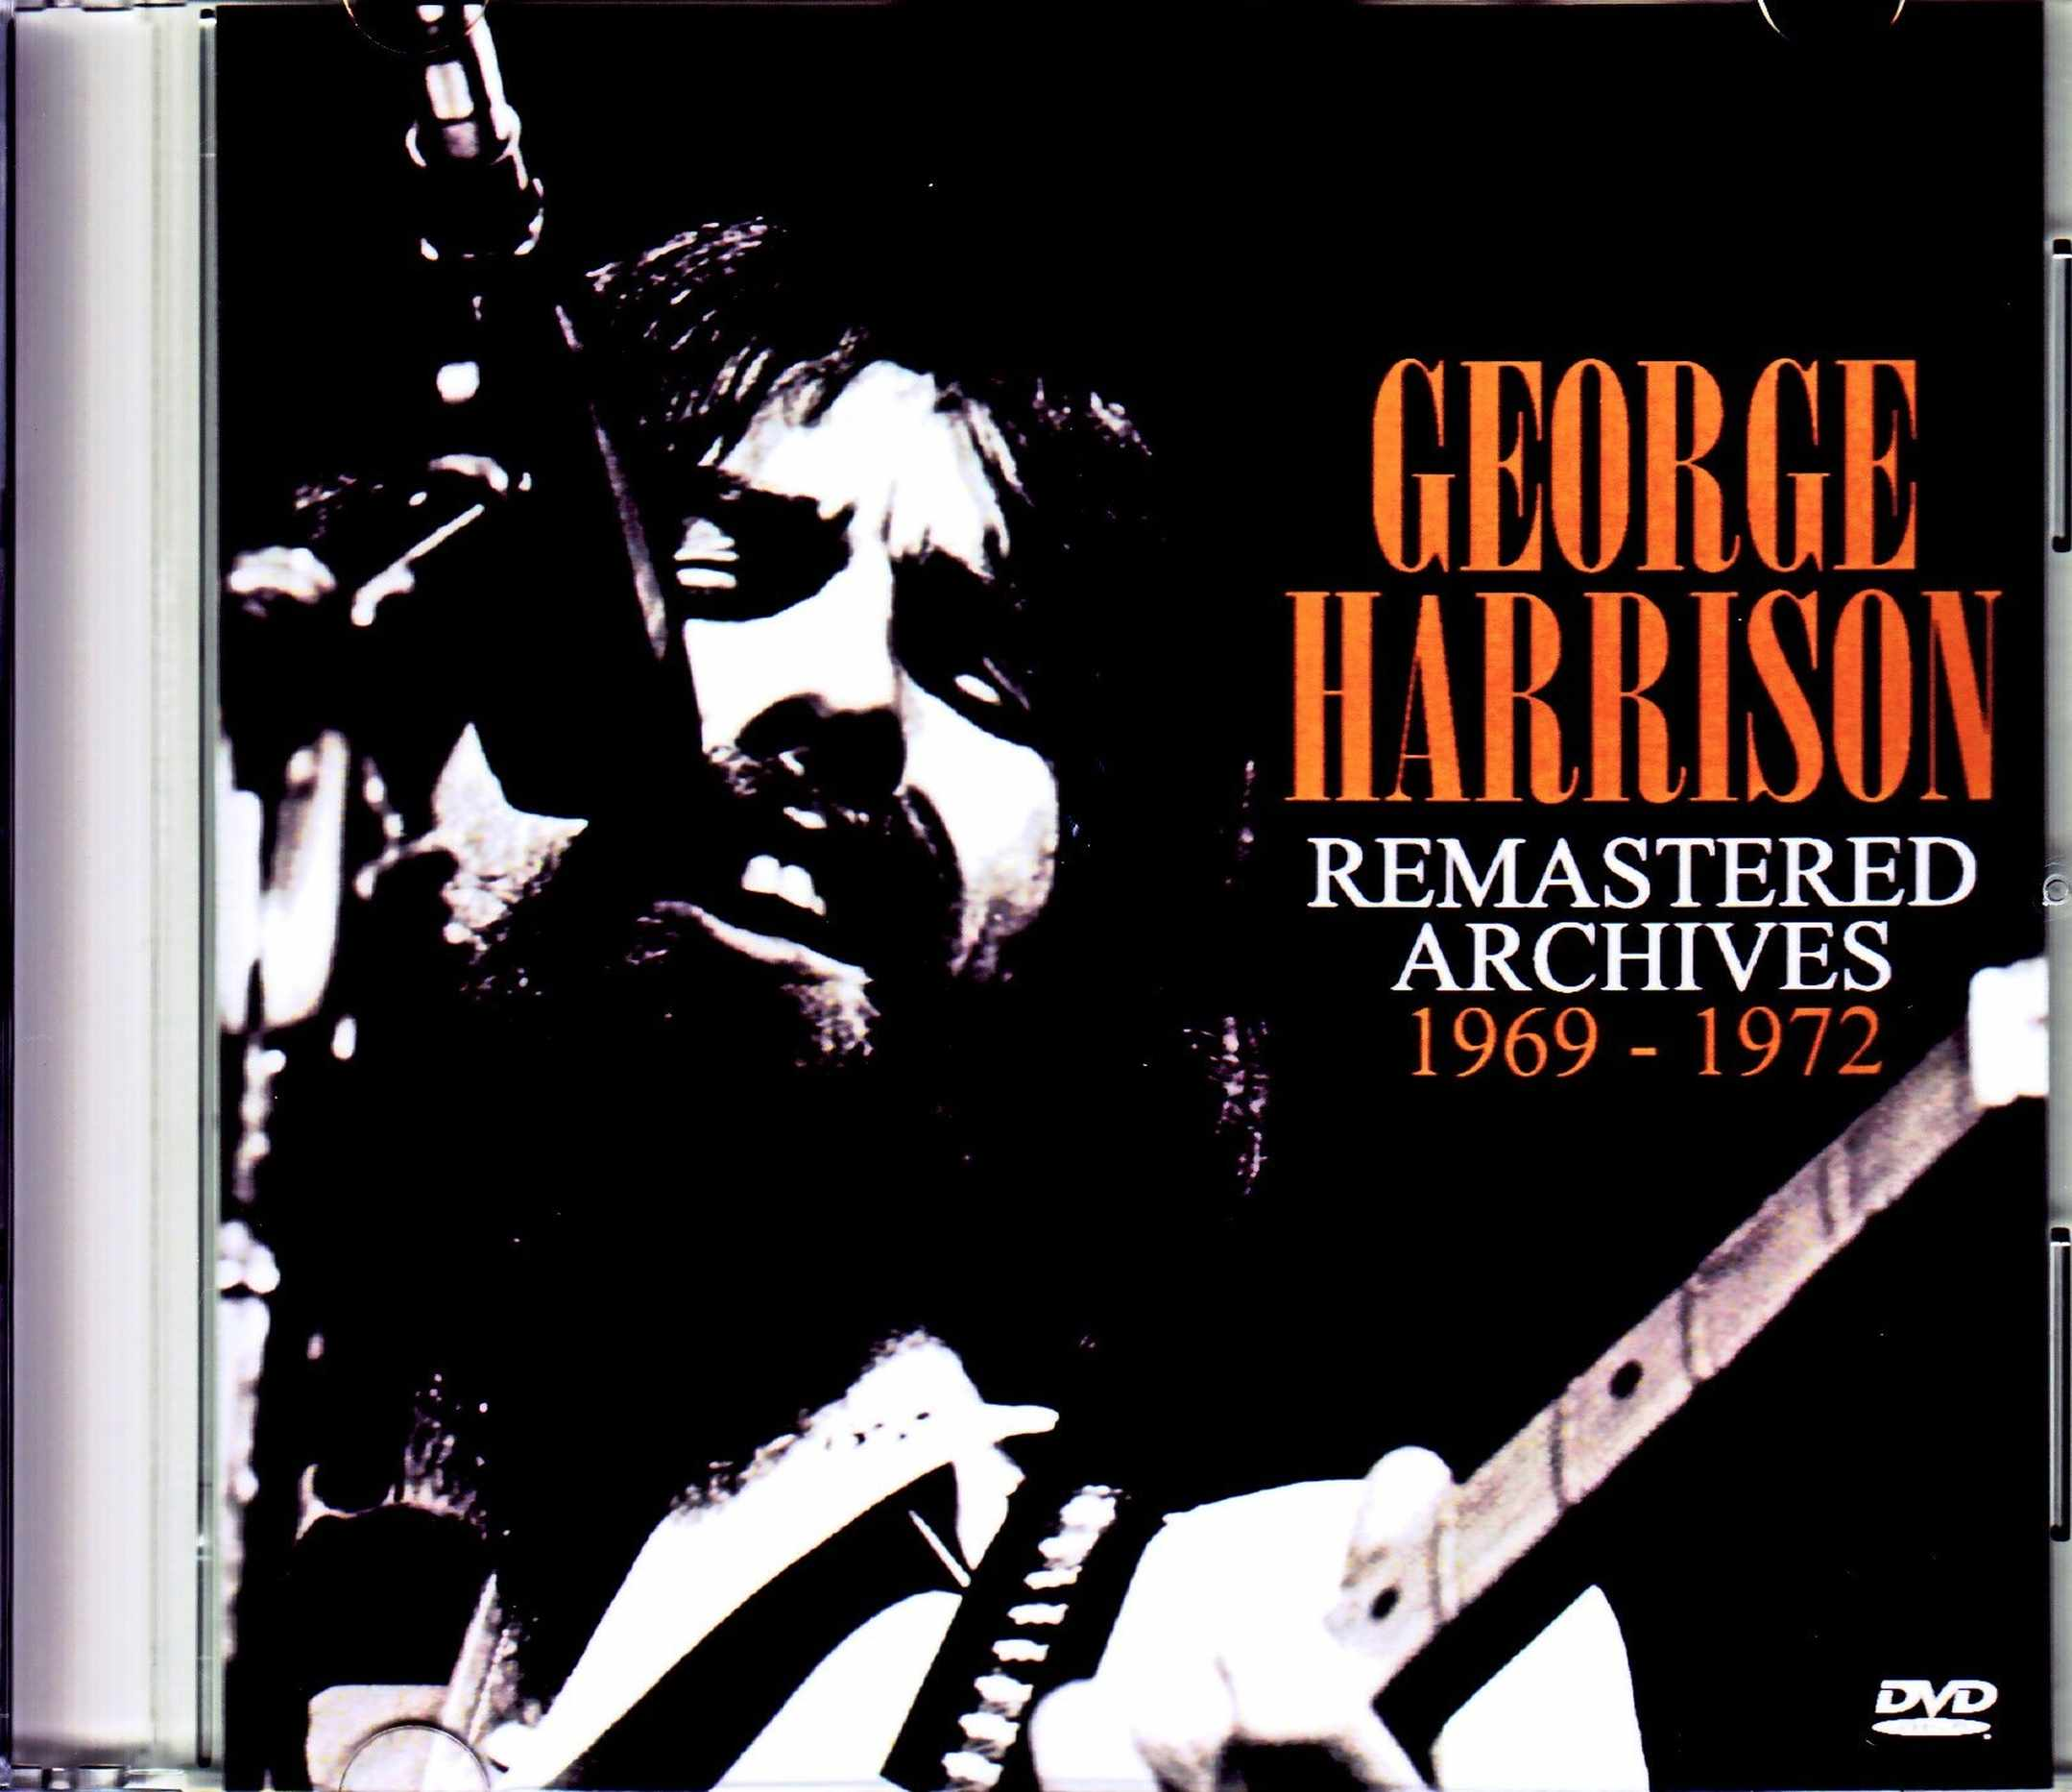 George Harrison ジョージ・ハリスン/Remastered Archives 1969-1972